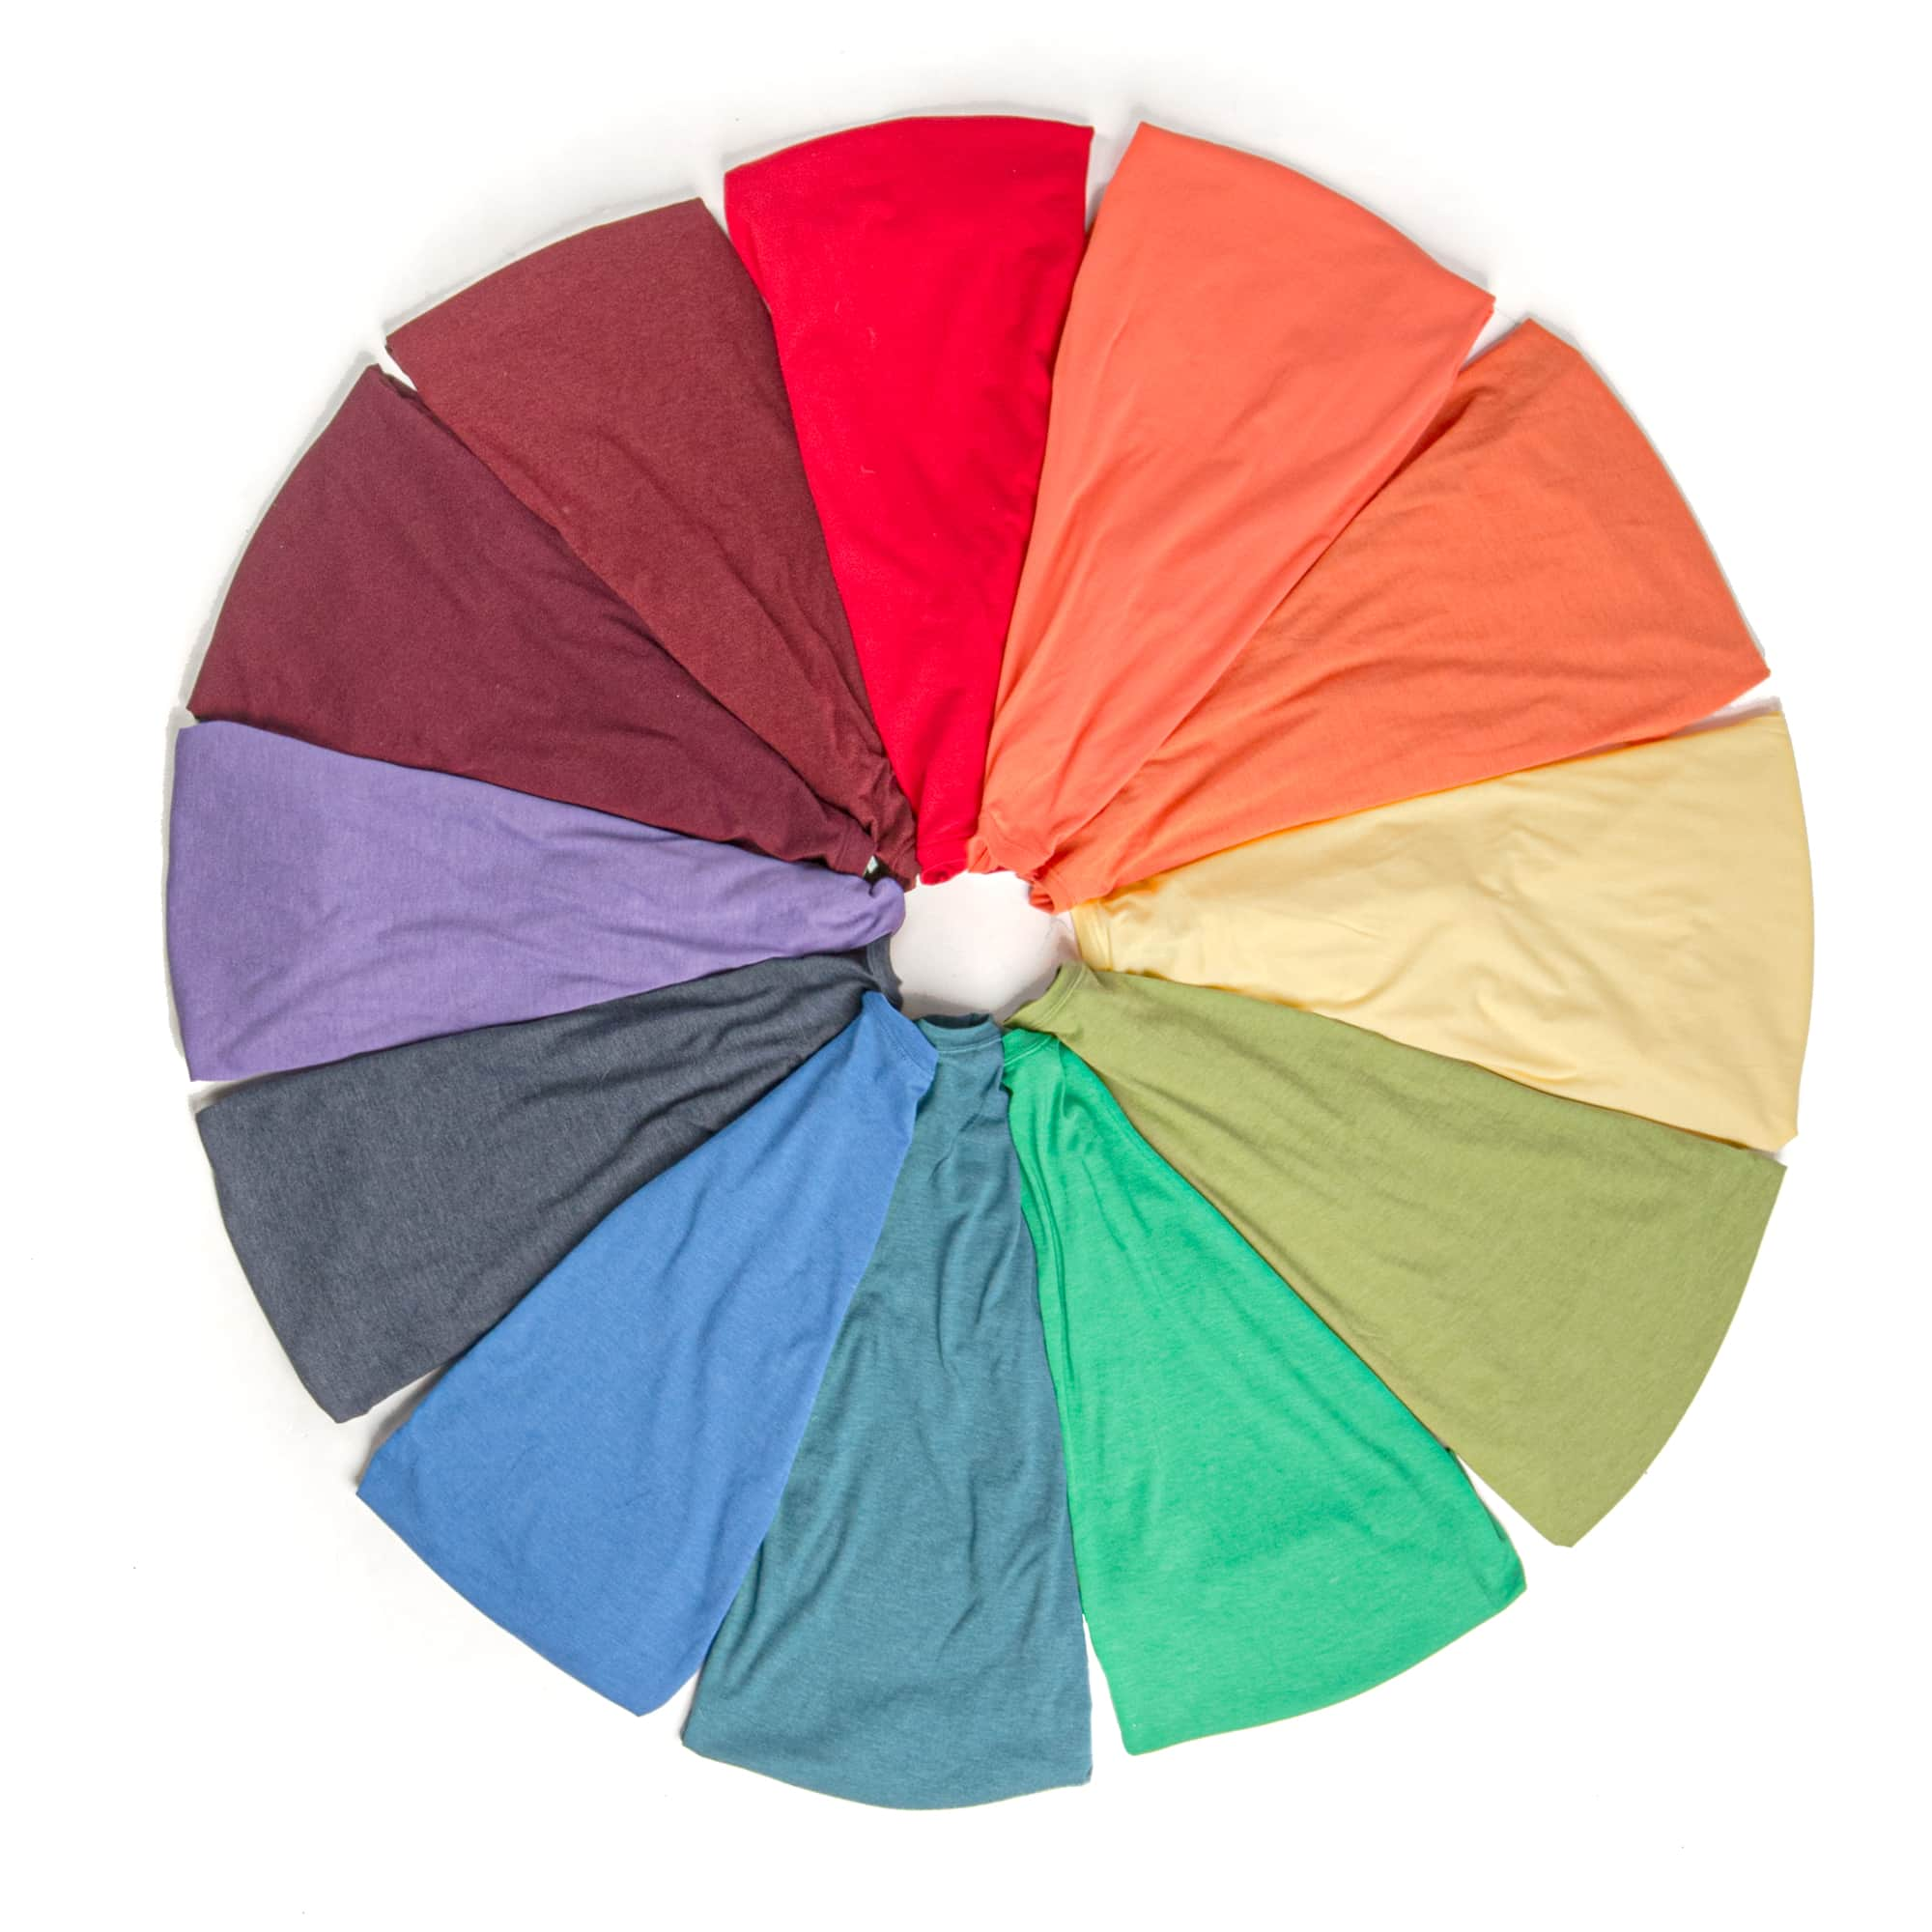 A color wheel made up of various folded t-shirts.